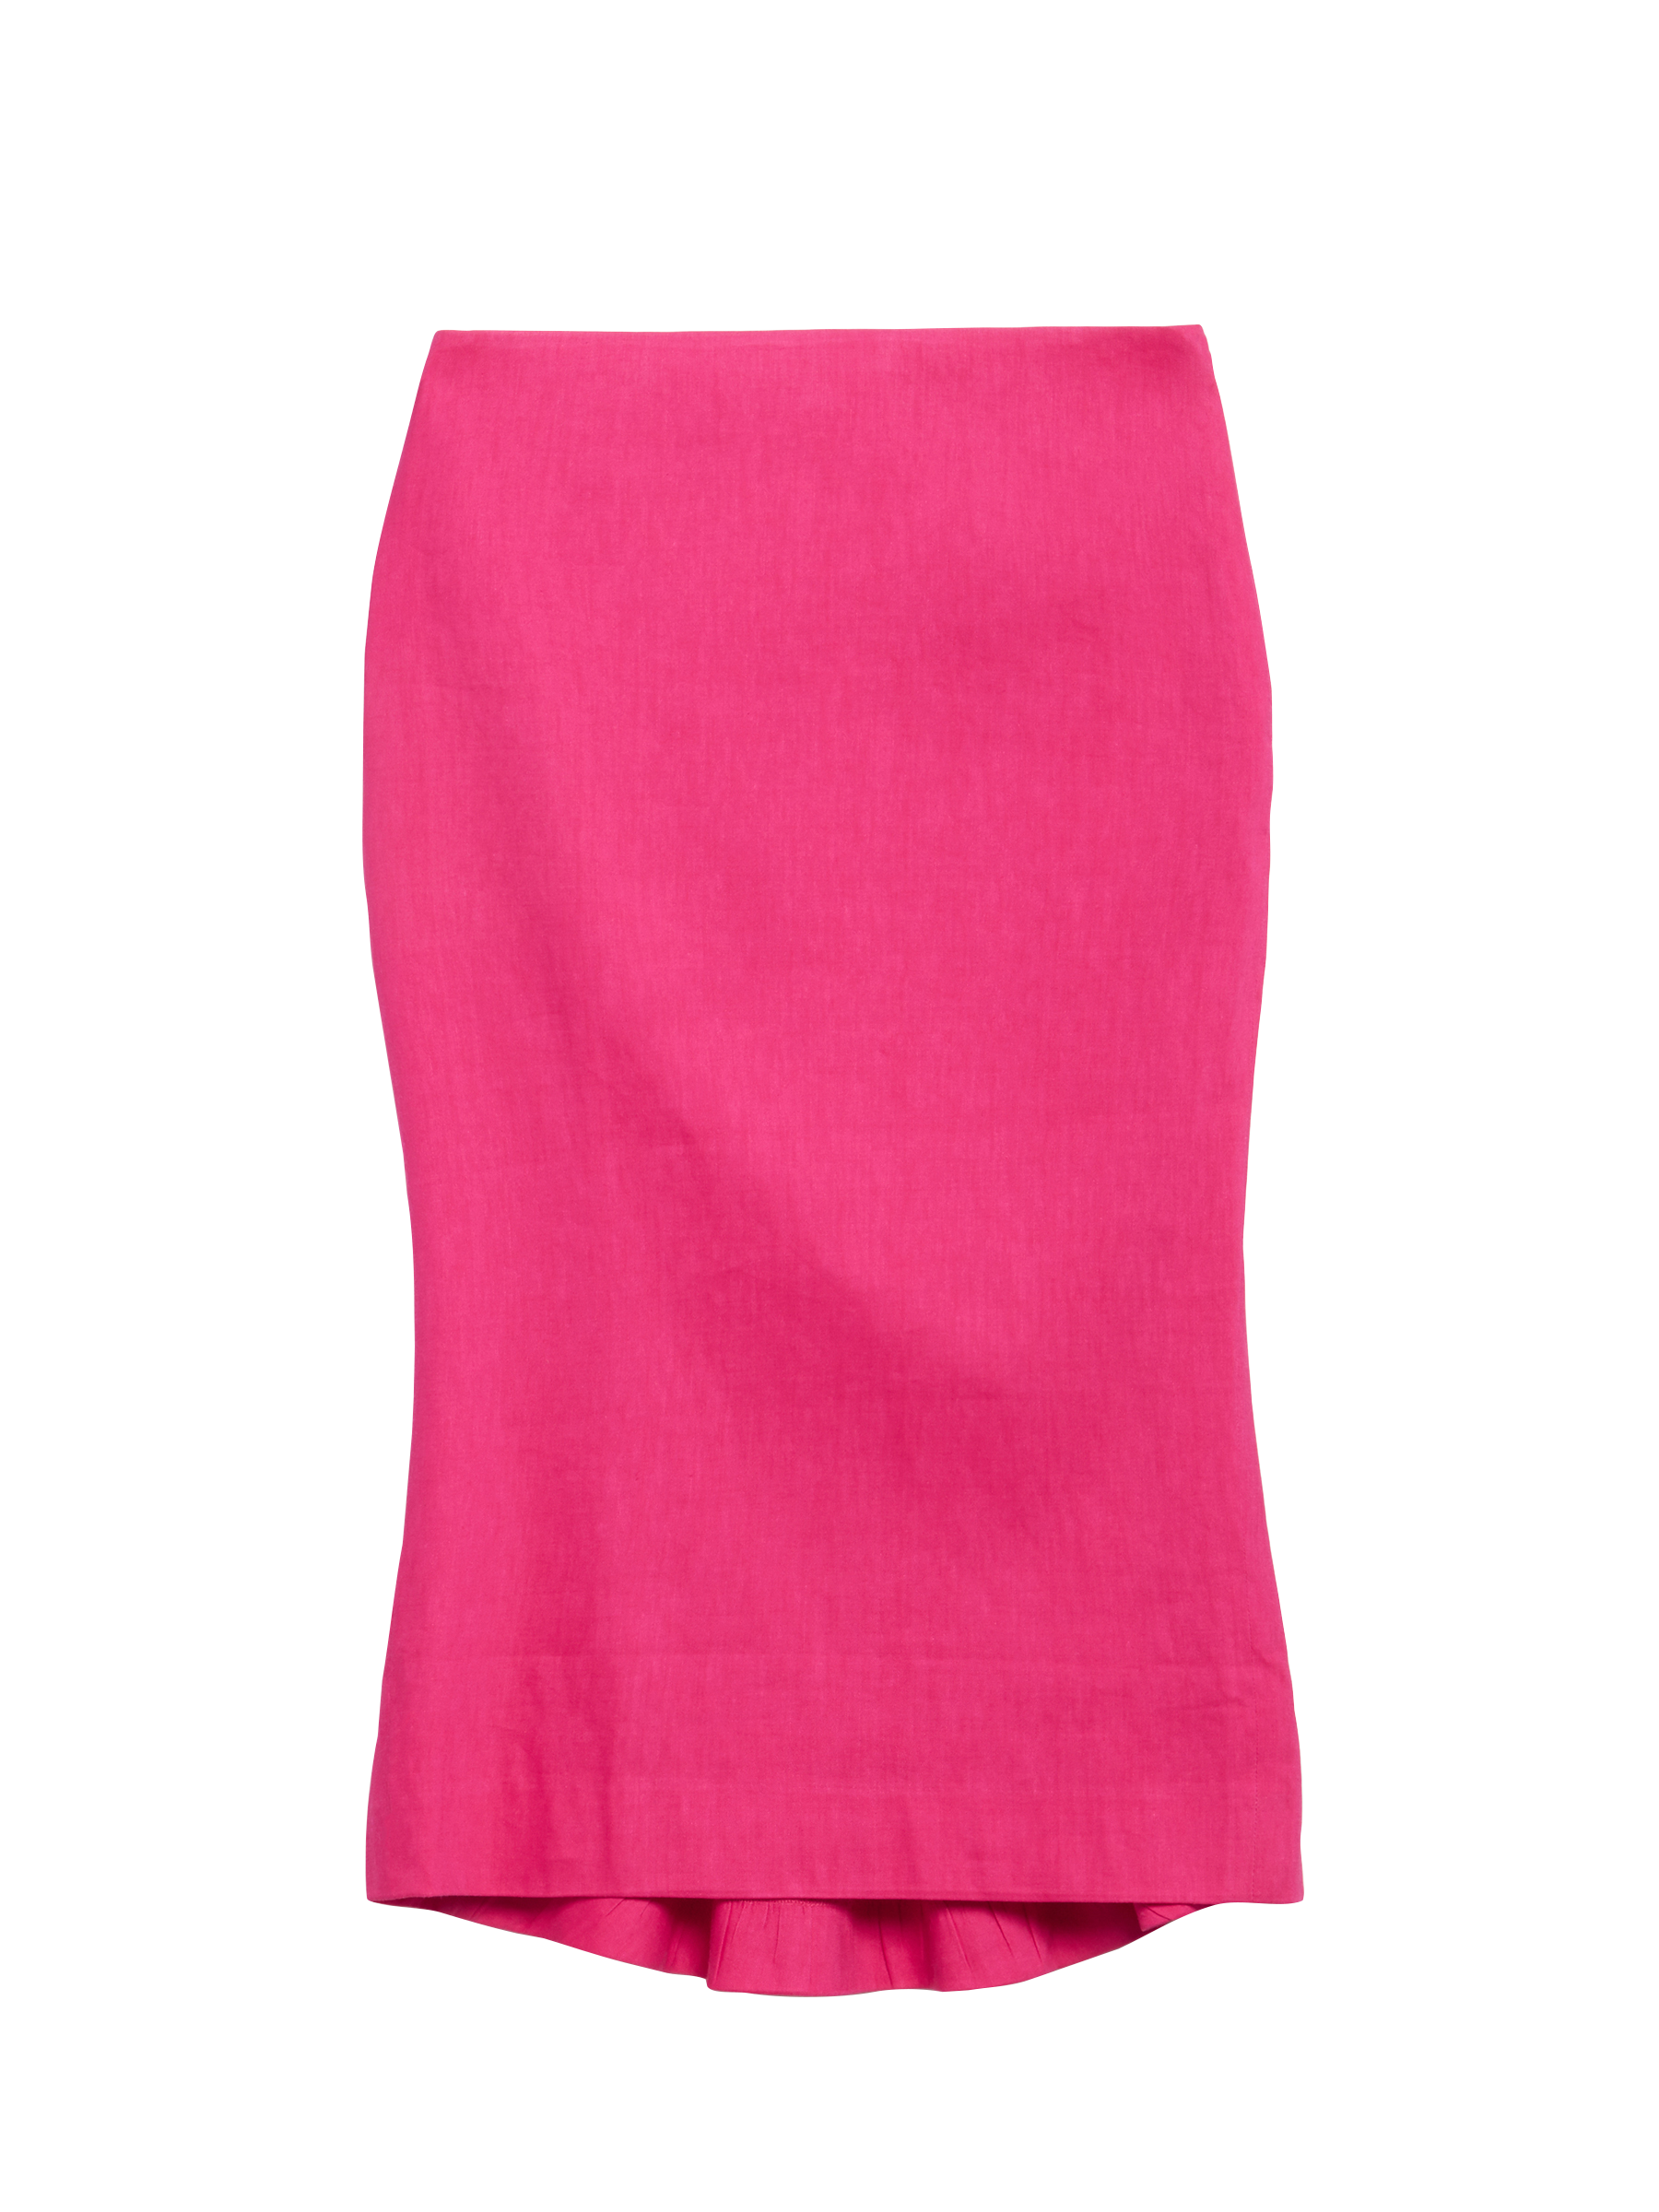 Add color and sculptural flair to your look with this skirt from Carlisle.